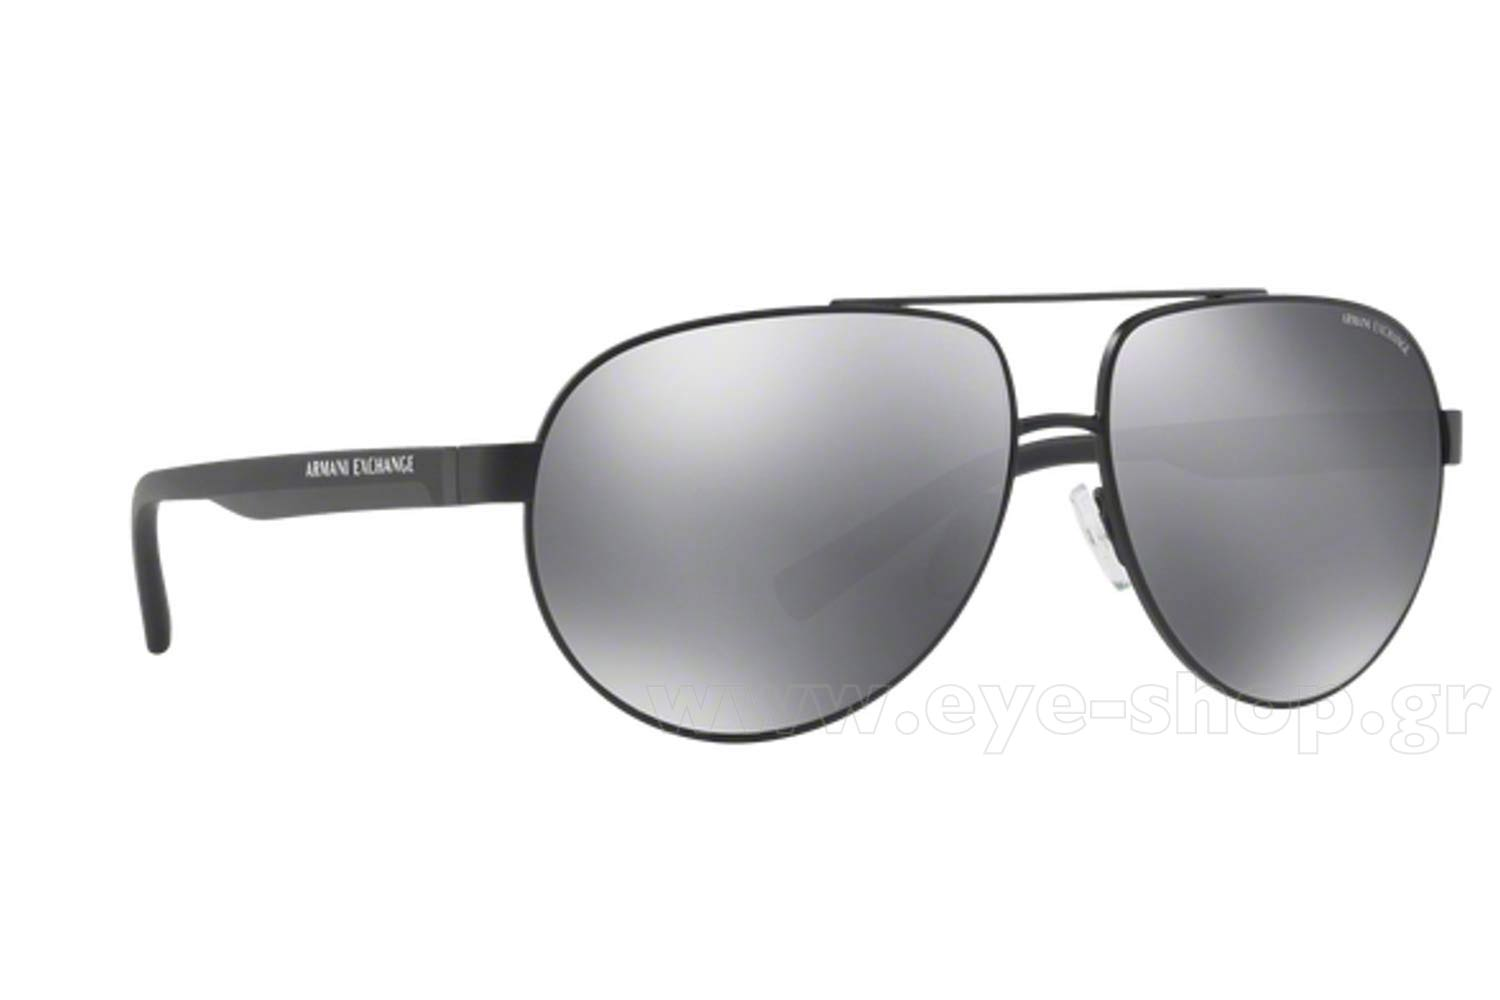 57435b382a6 SUNGLASSES Armani Exchange 2022S 60006G